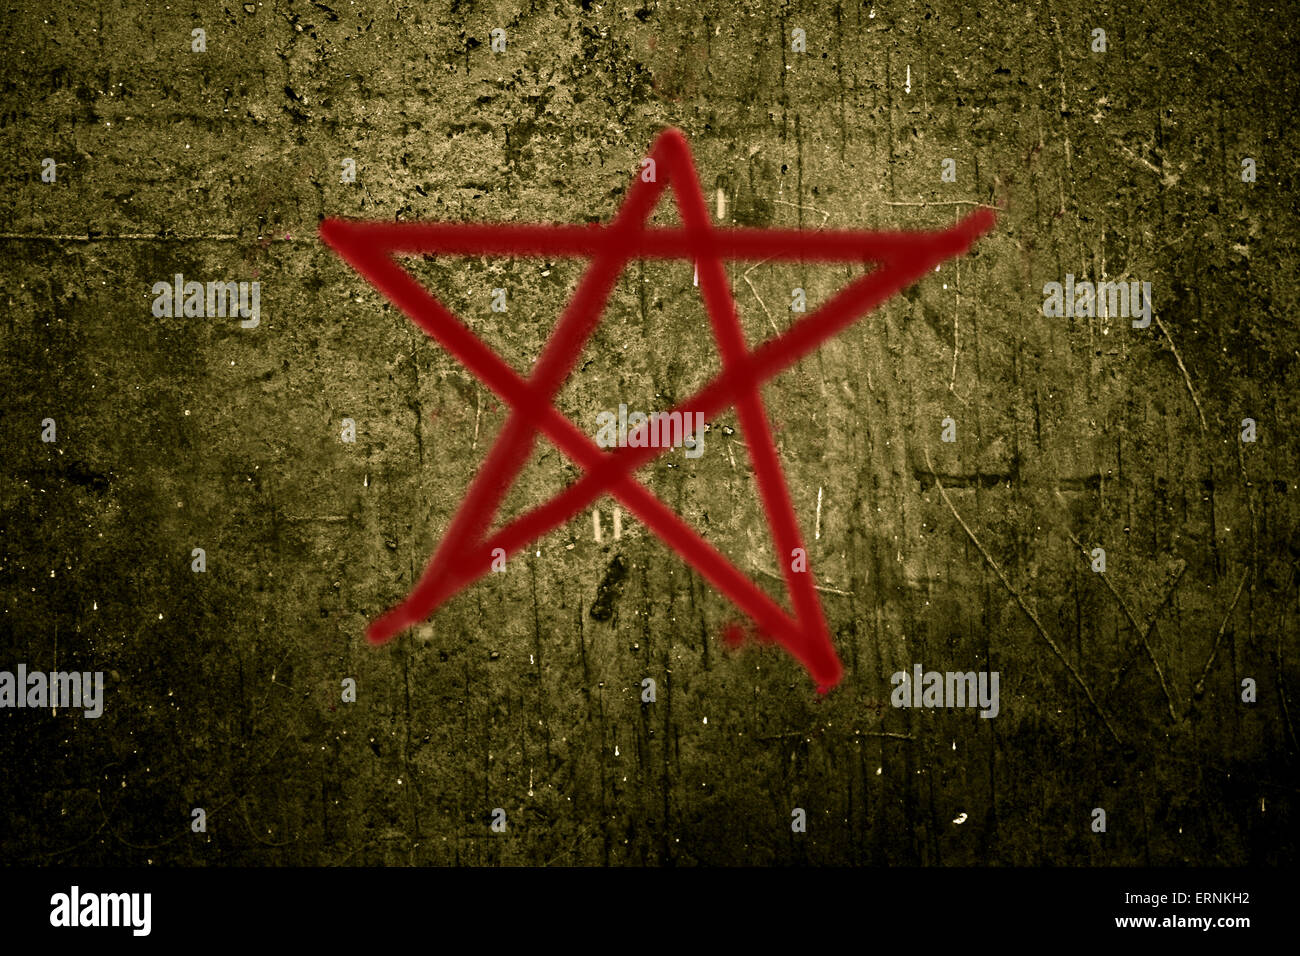 Altered photo of a red pentagram on a rough concrete wall - Stock Image